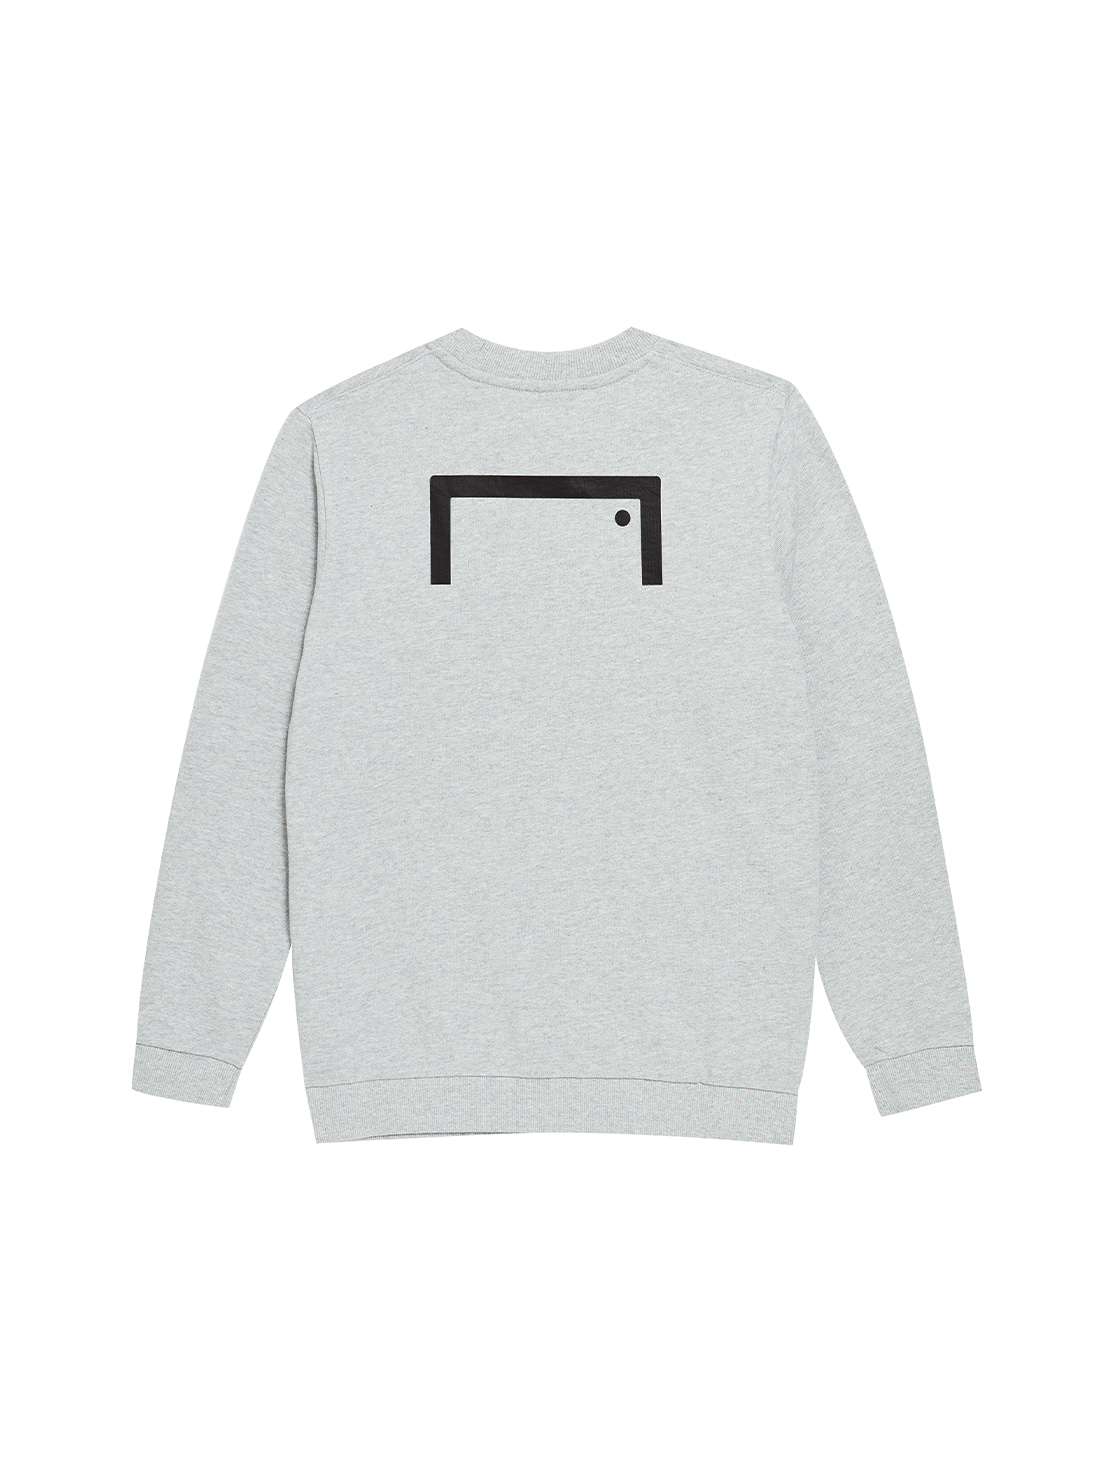 (KIDS) BACK LOGO SWEATSHIRTS - GRAY